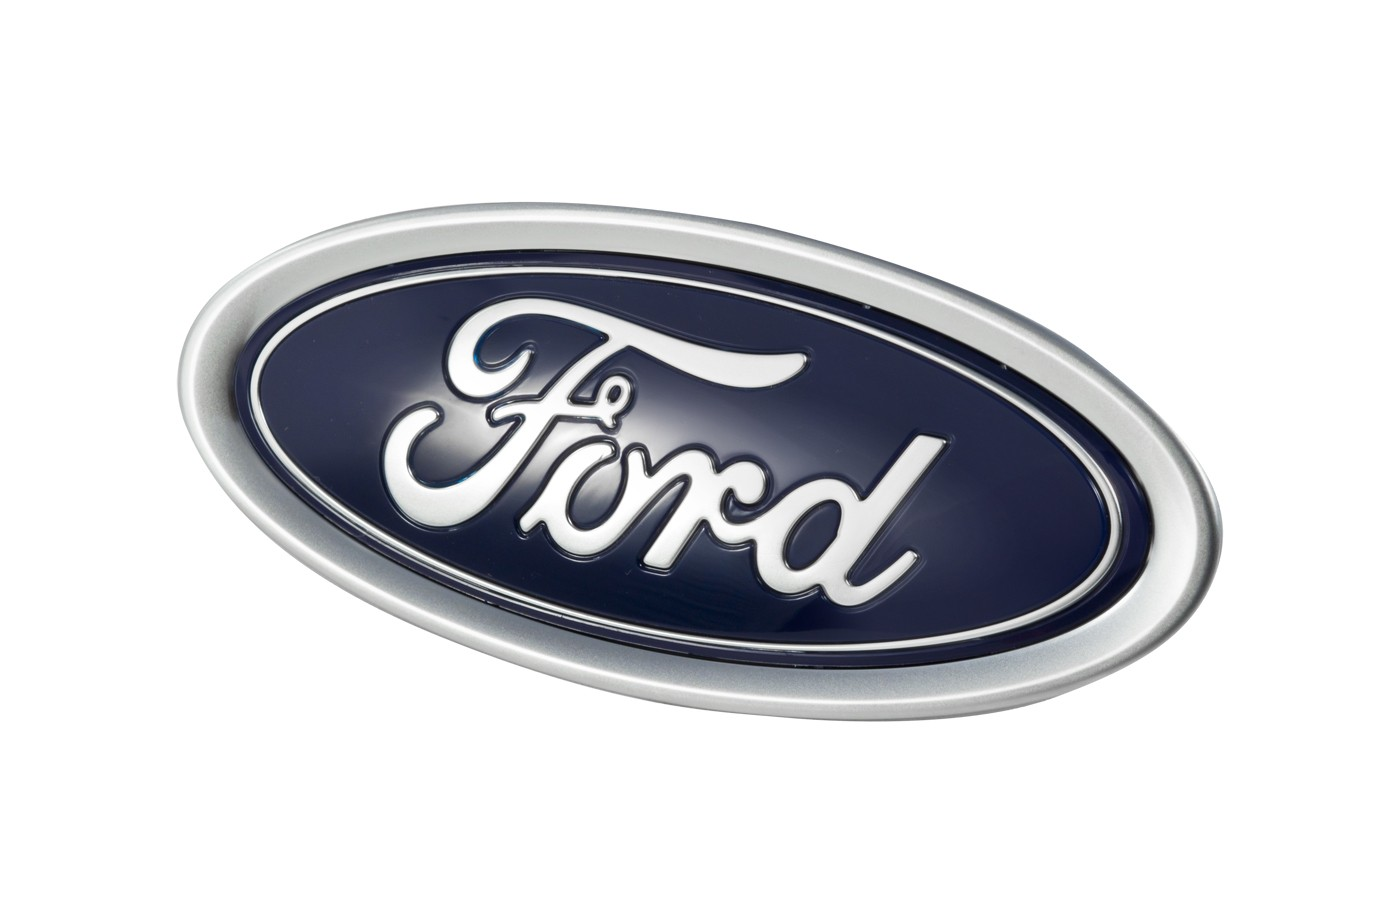 2017 Ford Gt Supercar Genuine Ford Oval Front Bumper Logo